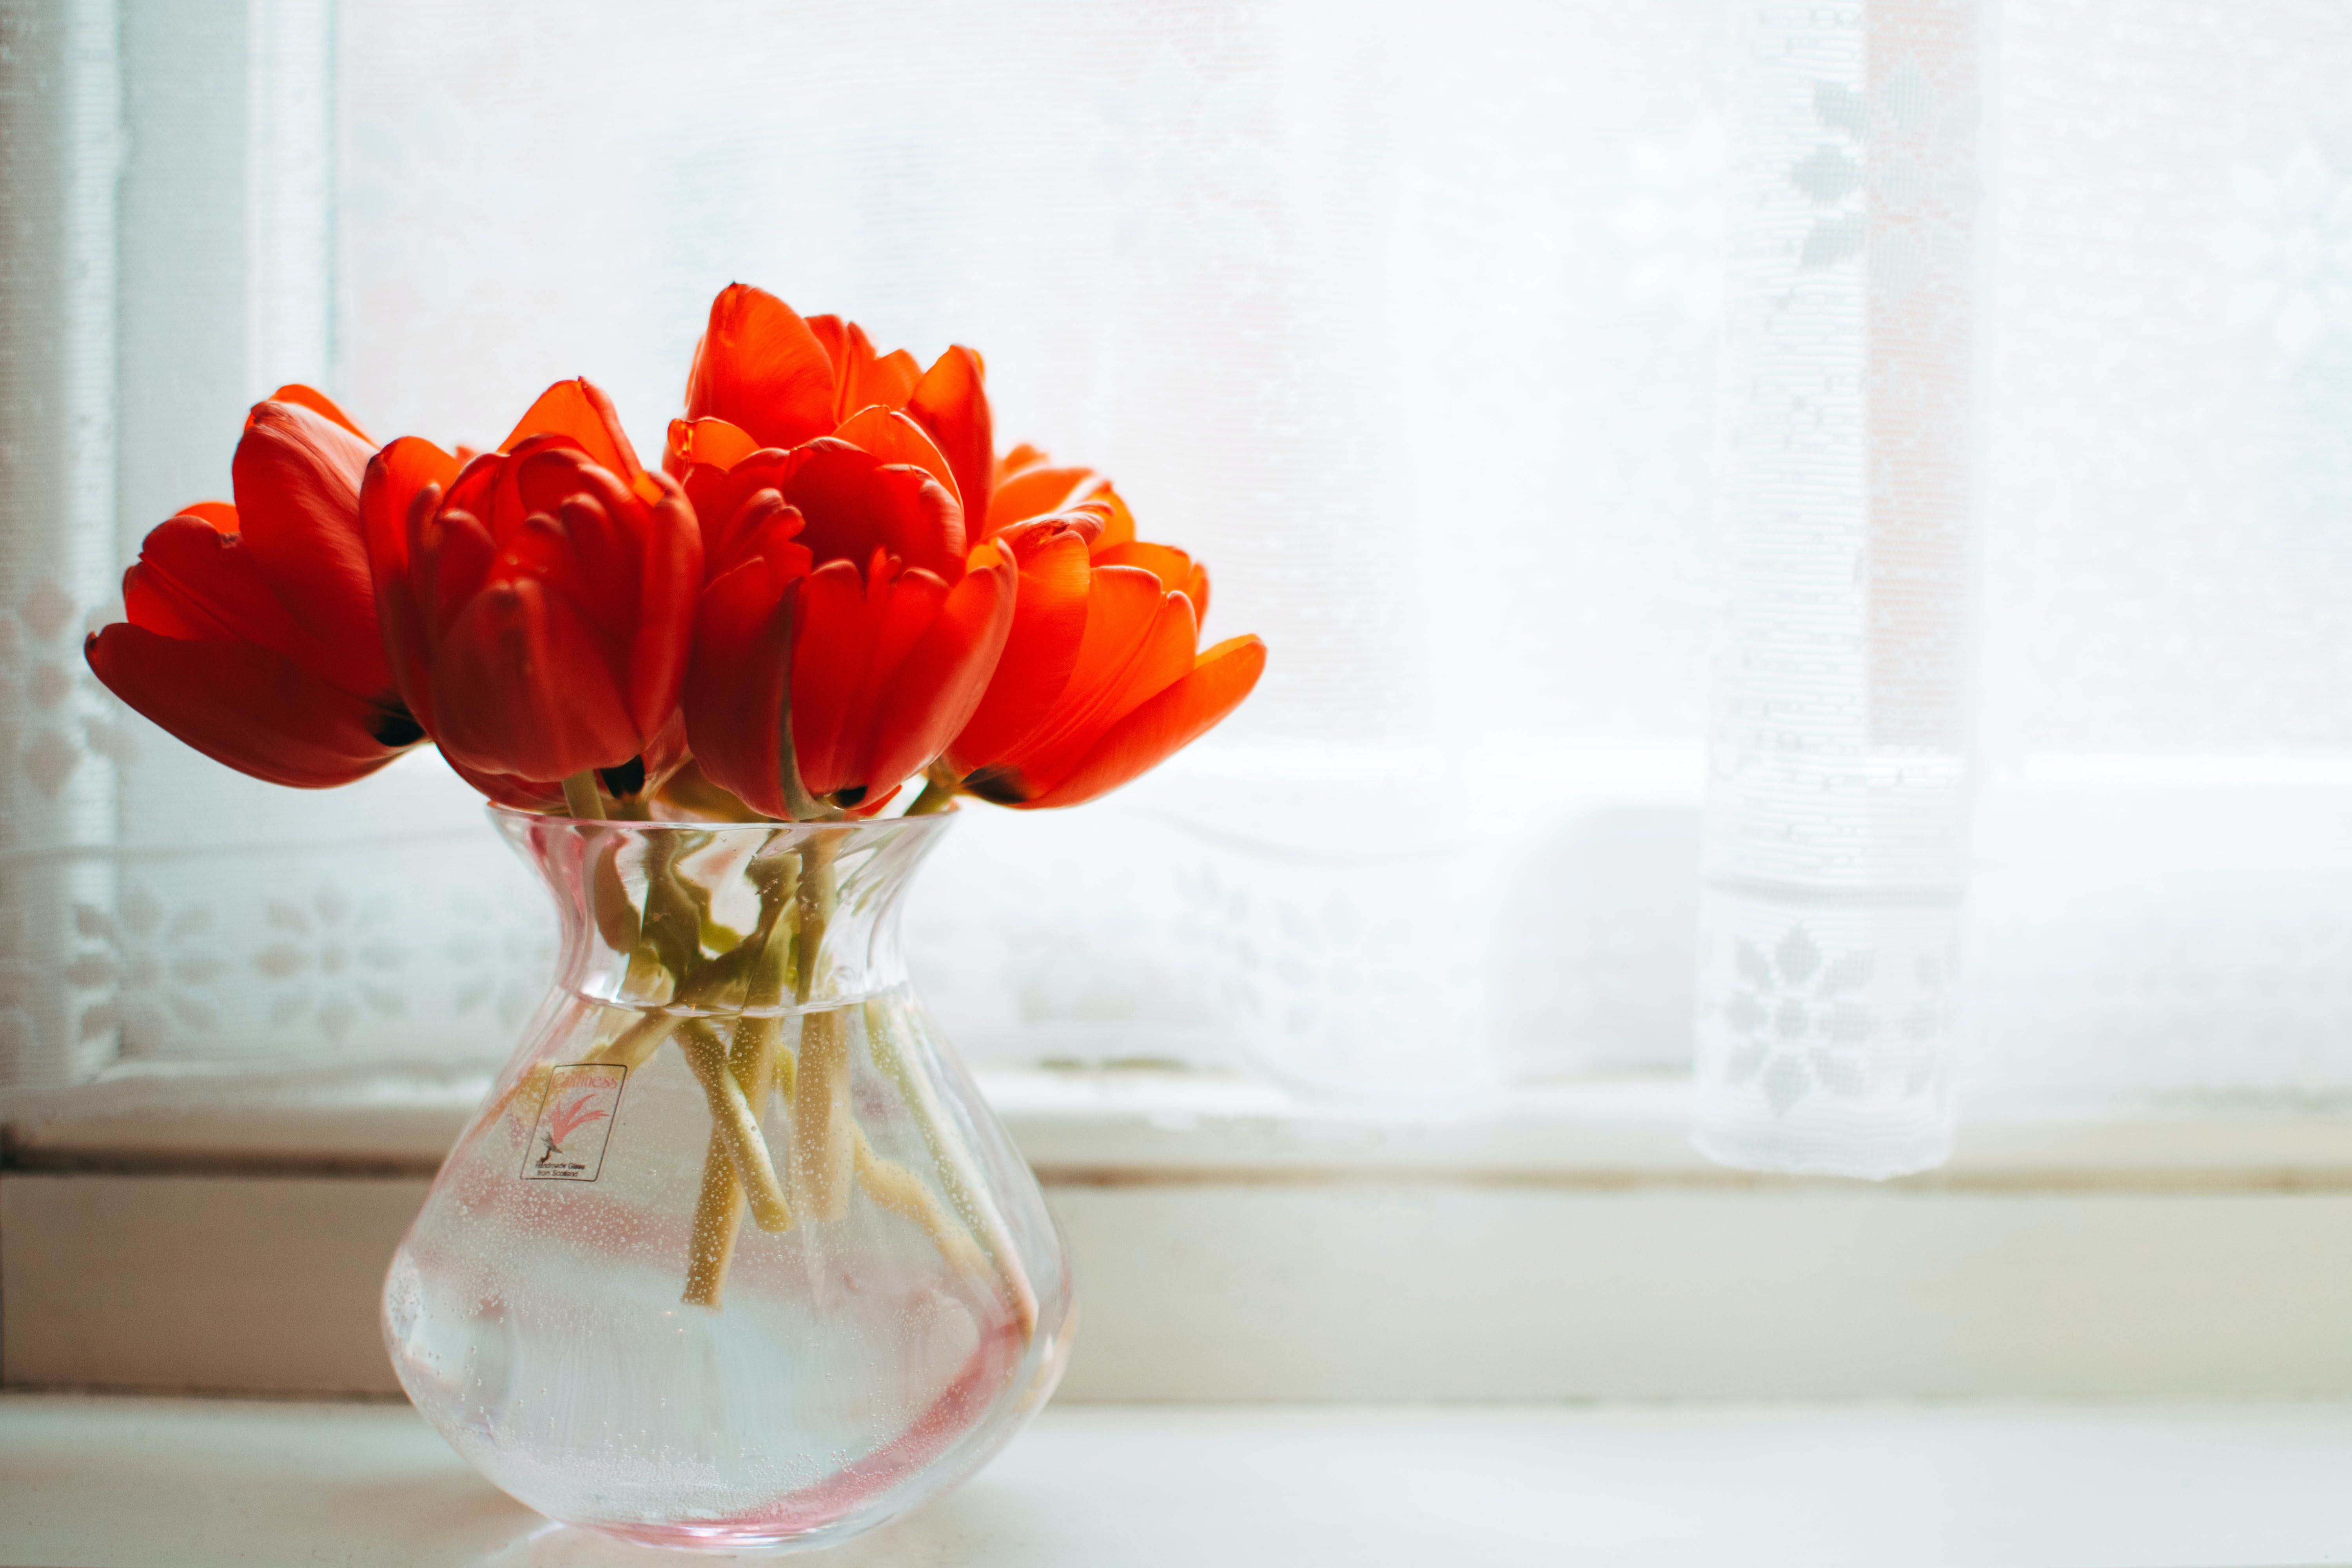 Red Tulips in Clear Glass Vase With Water Centerpiece Near White Curtain